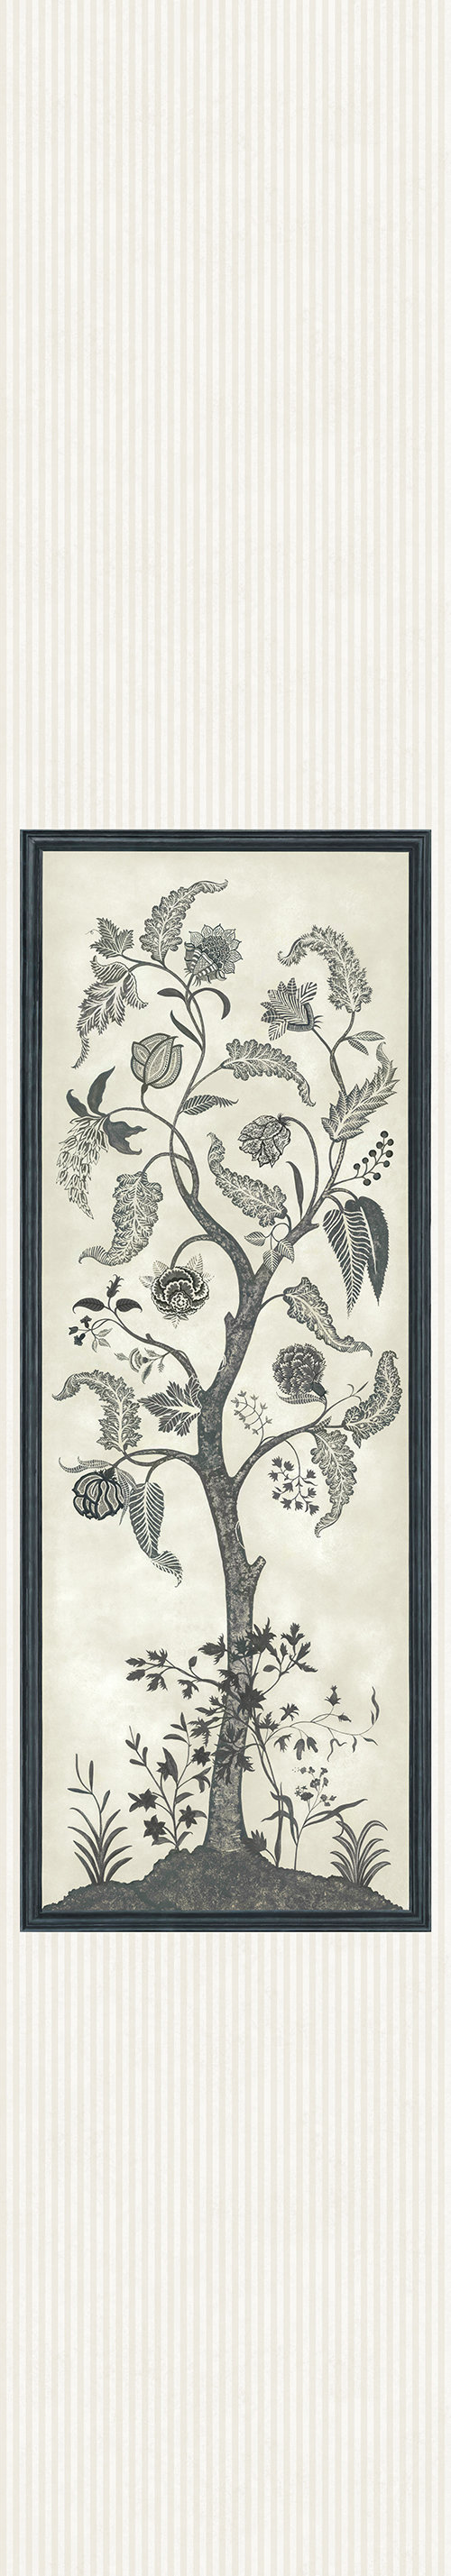 Cole & Son Trees of Eden Panel Charcoal / Parchment Mural - Product code: 113/14042